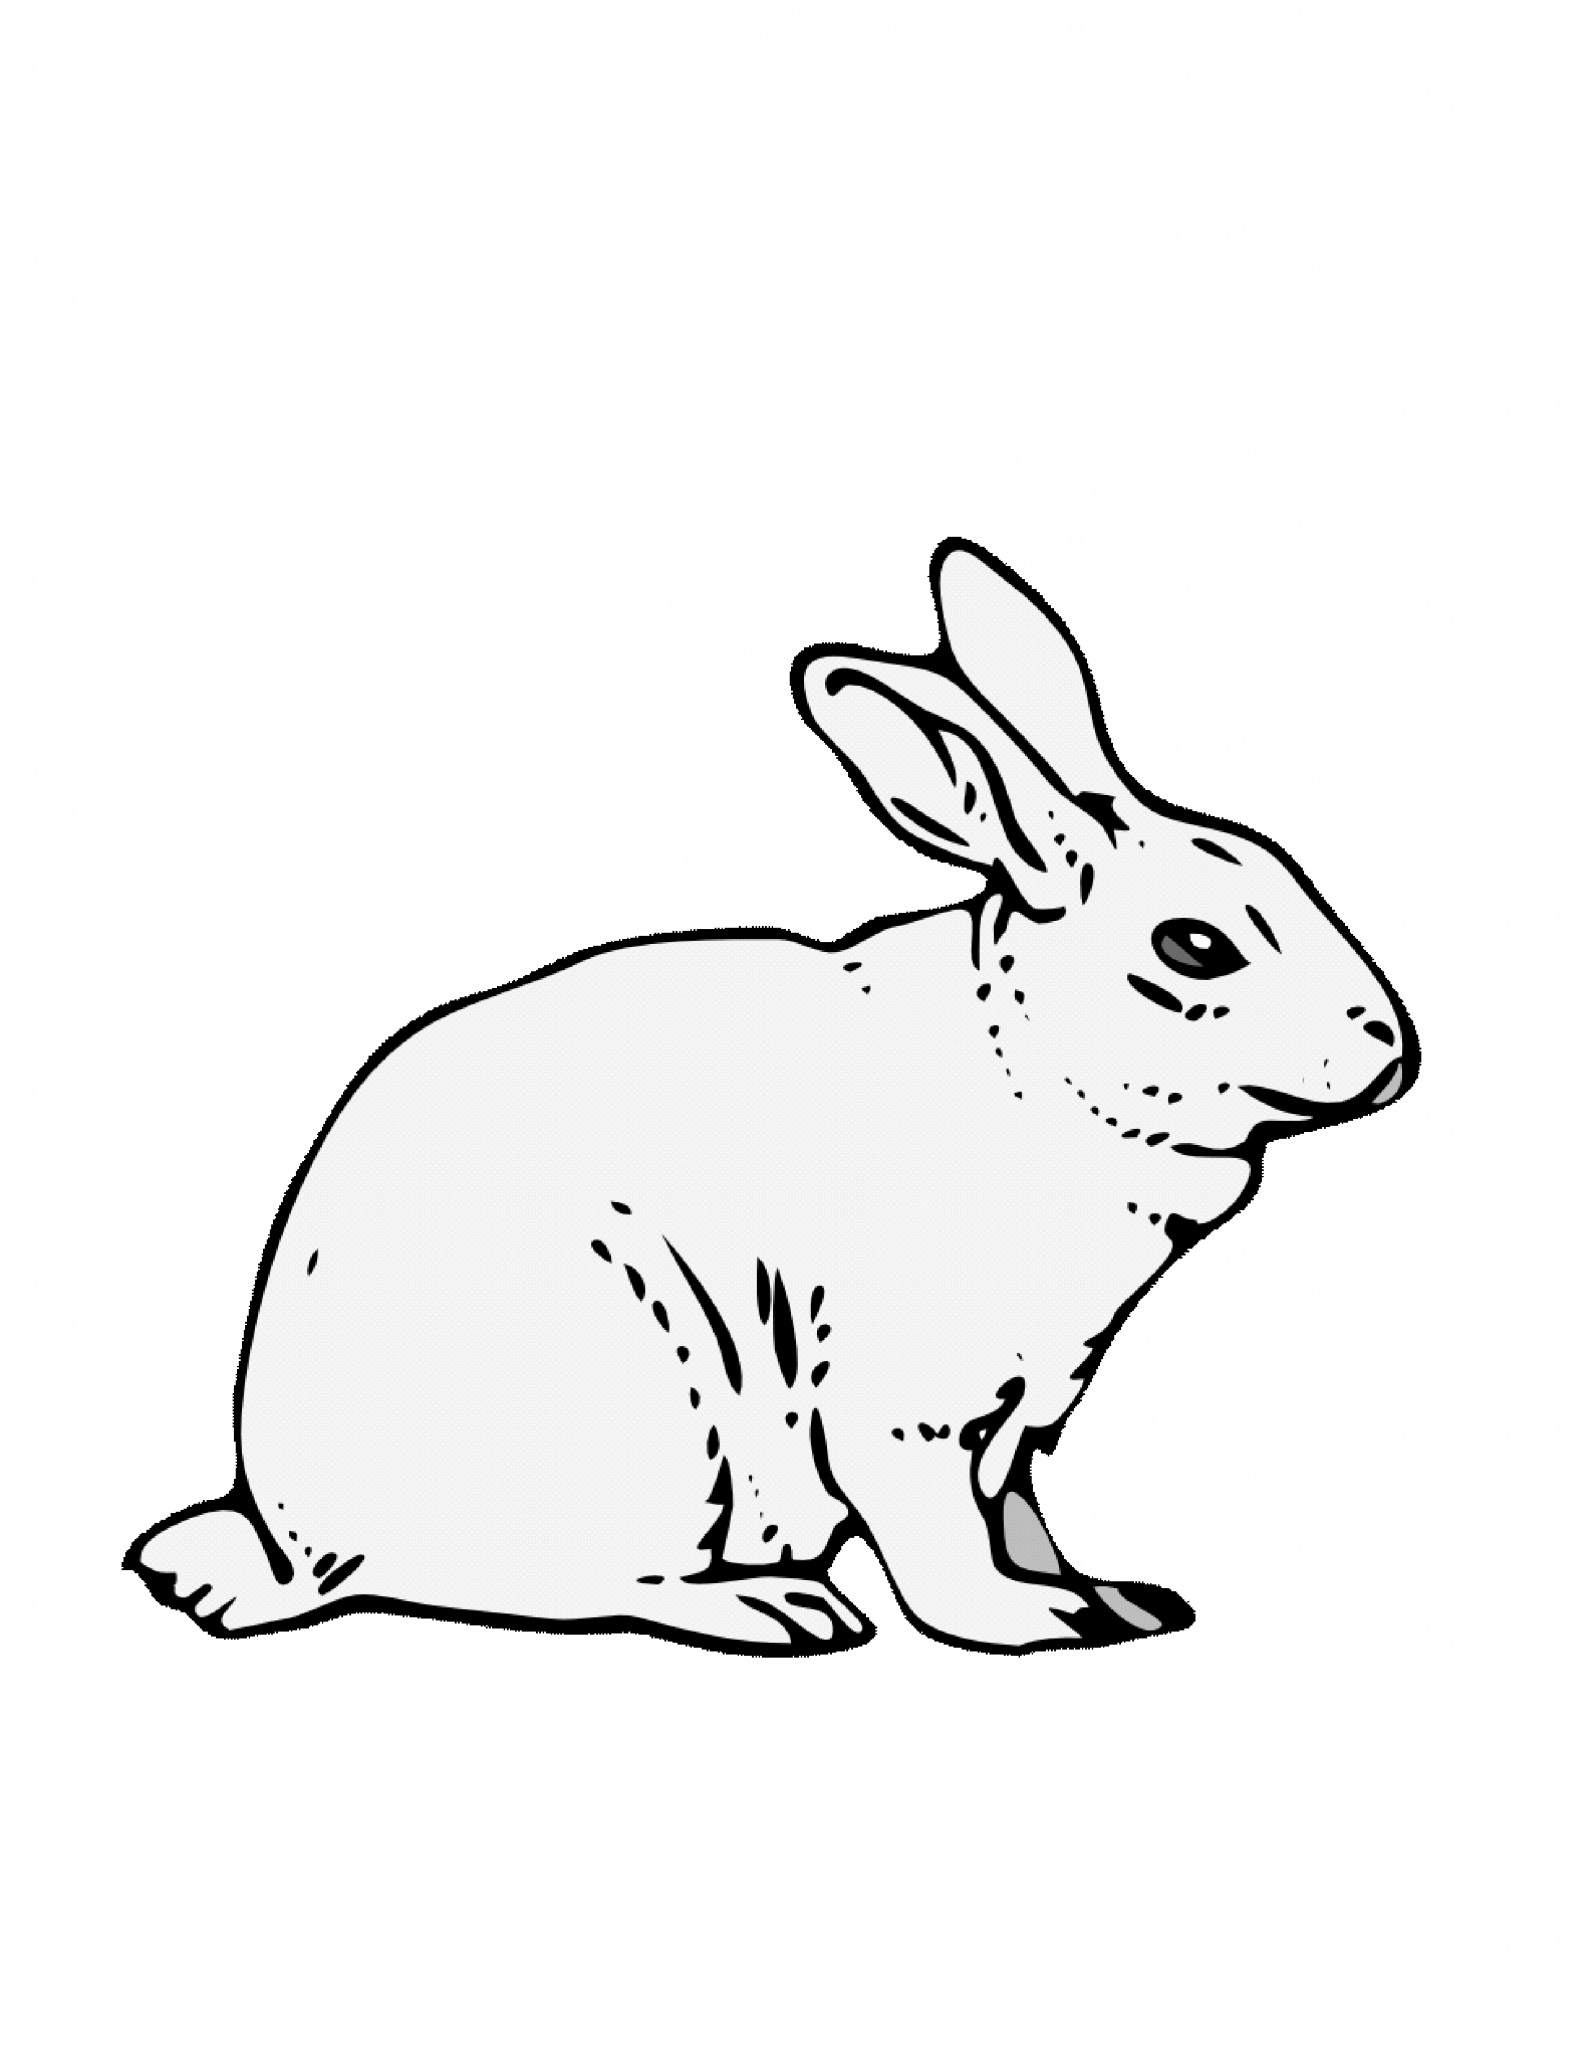 rabbit picture for colouring free printable rabbit coloring pages for kids picture rabbit for colouring